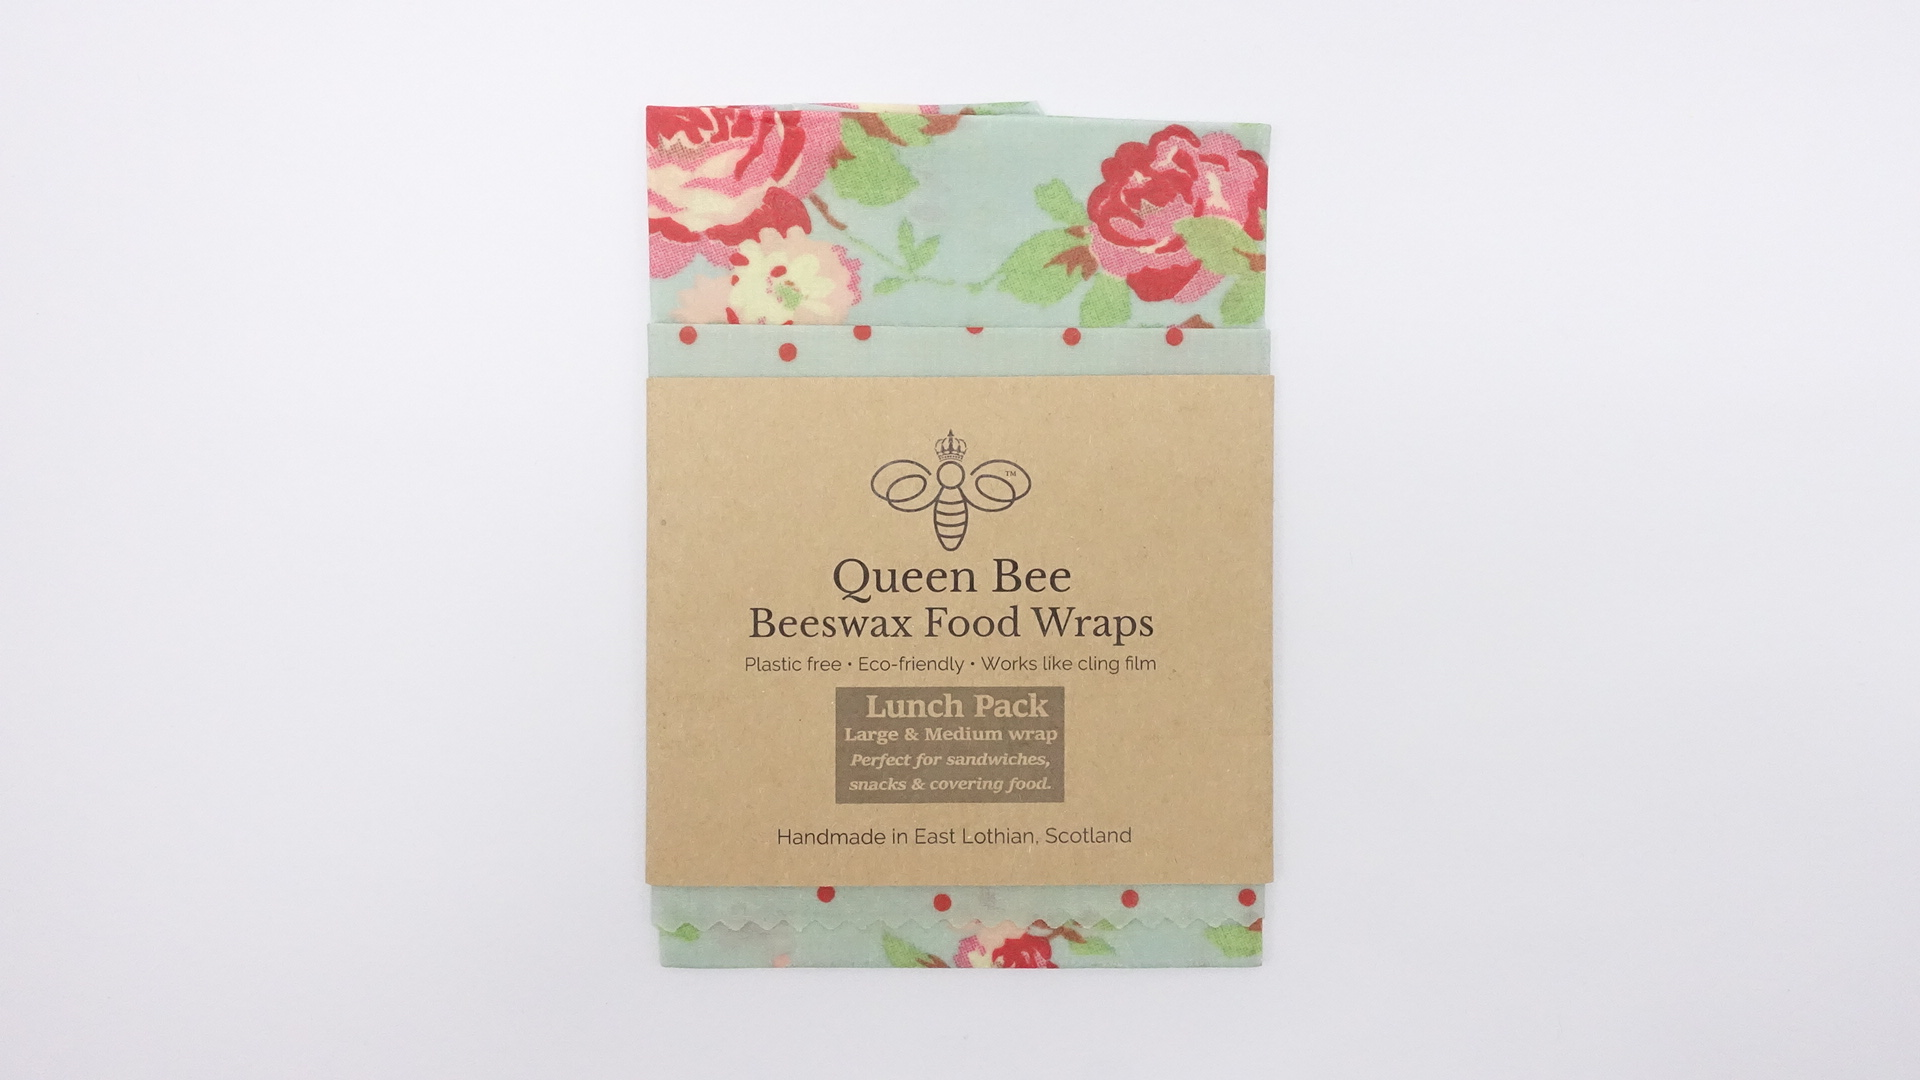 Queen Bee Beeswax Wraps Rose and Polka Dot